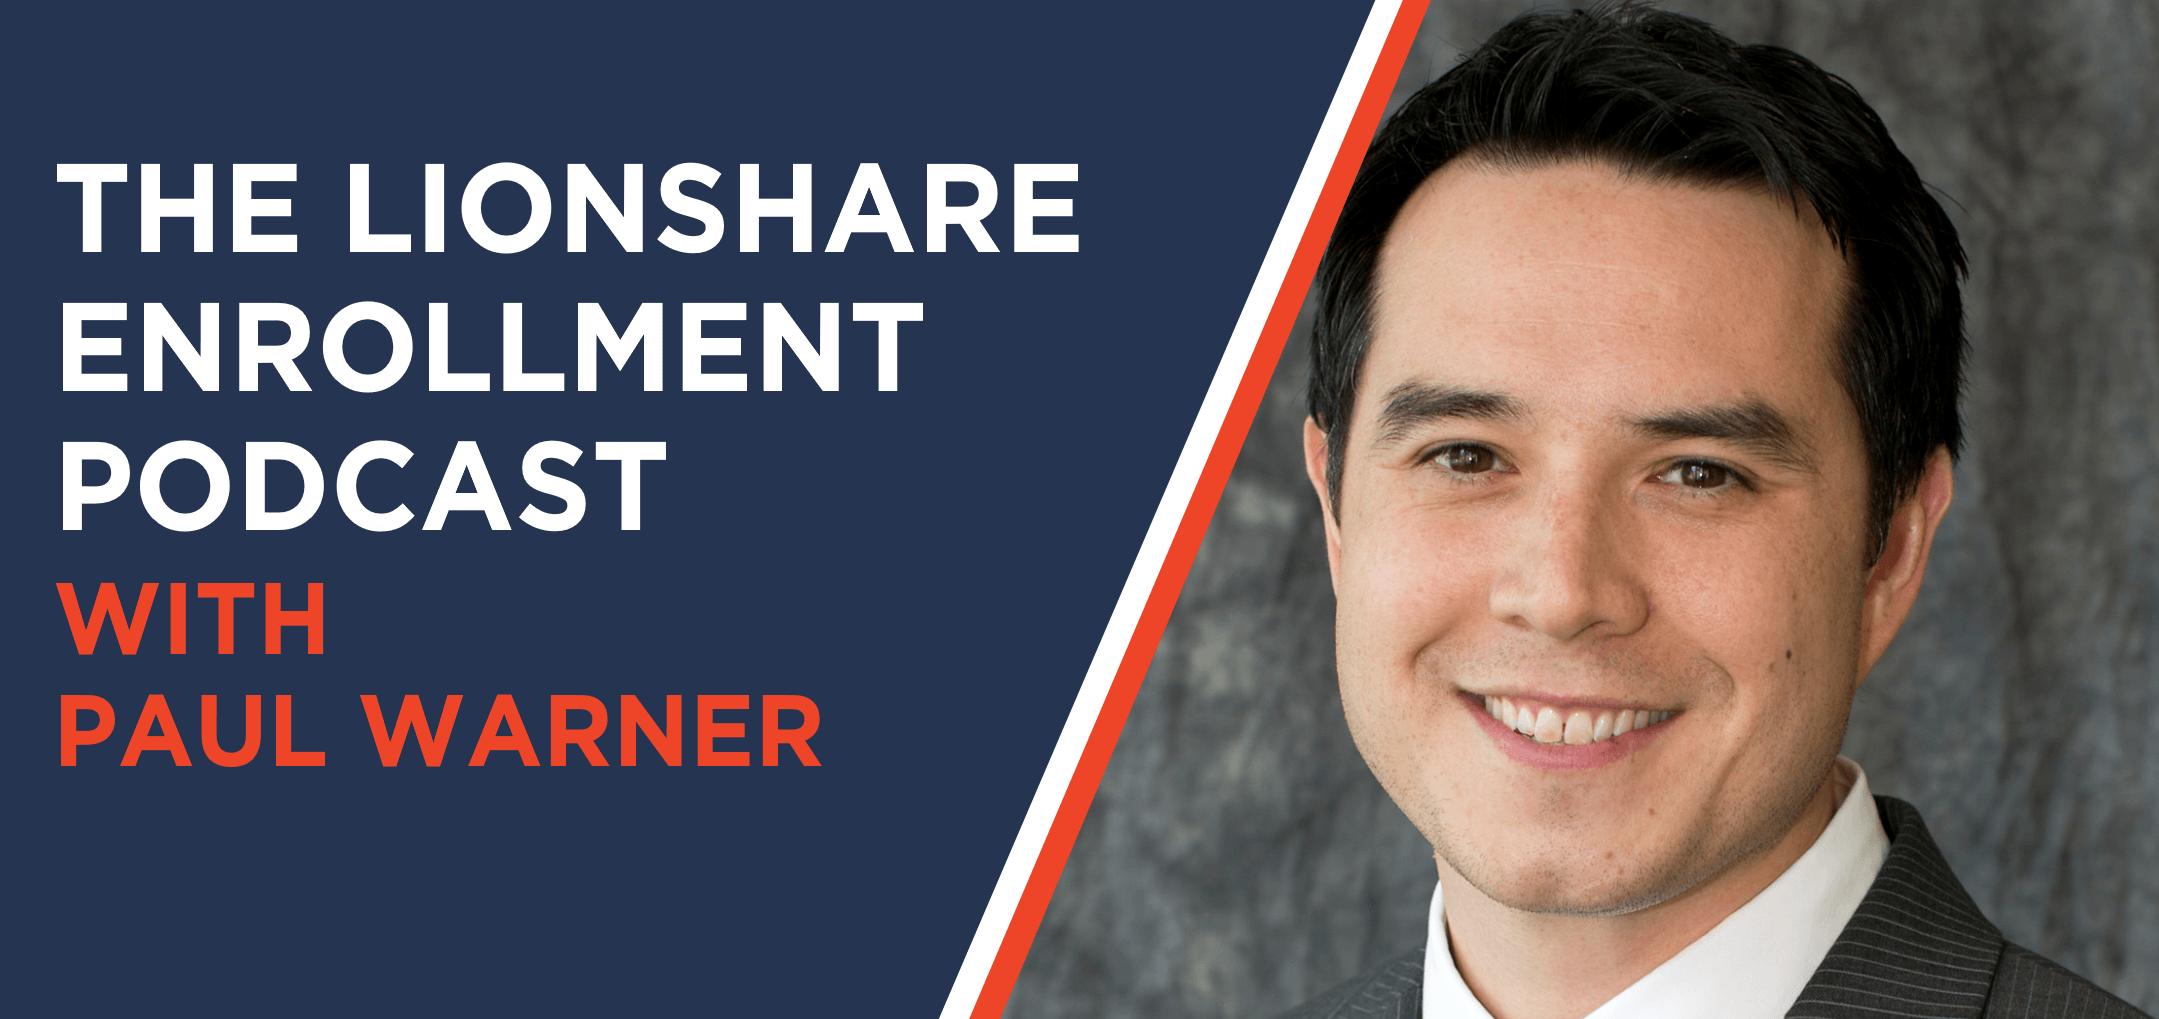 SBfm22 - The LionShare Enrollment Podcast with Paul Warner